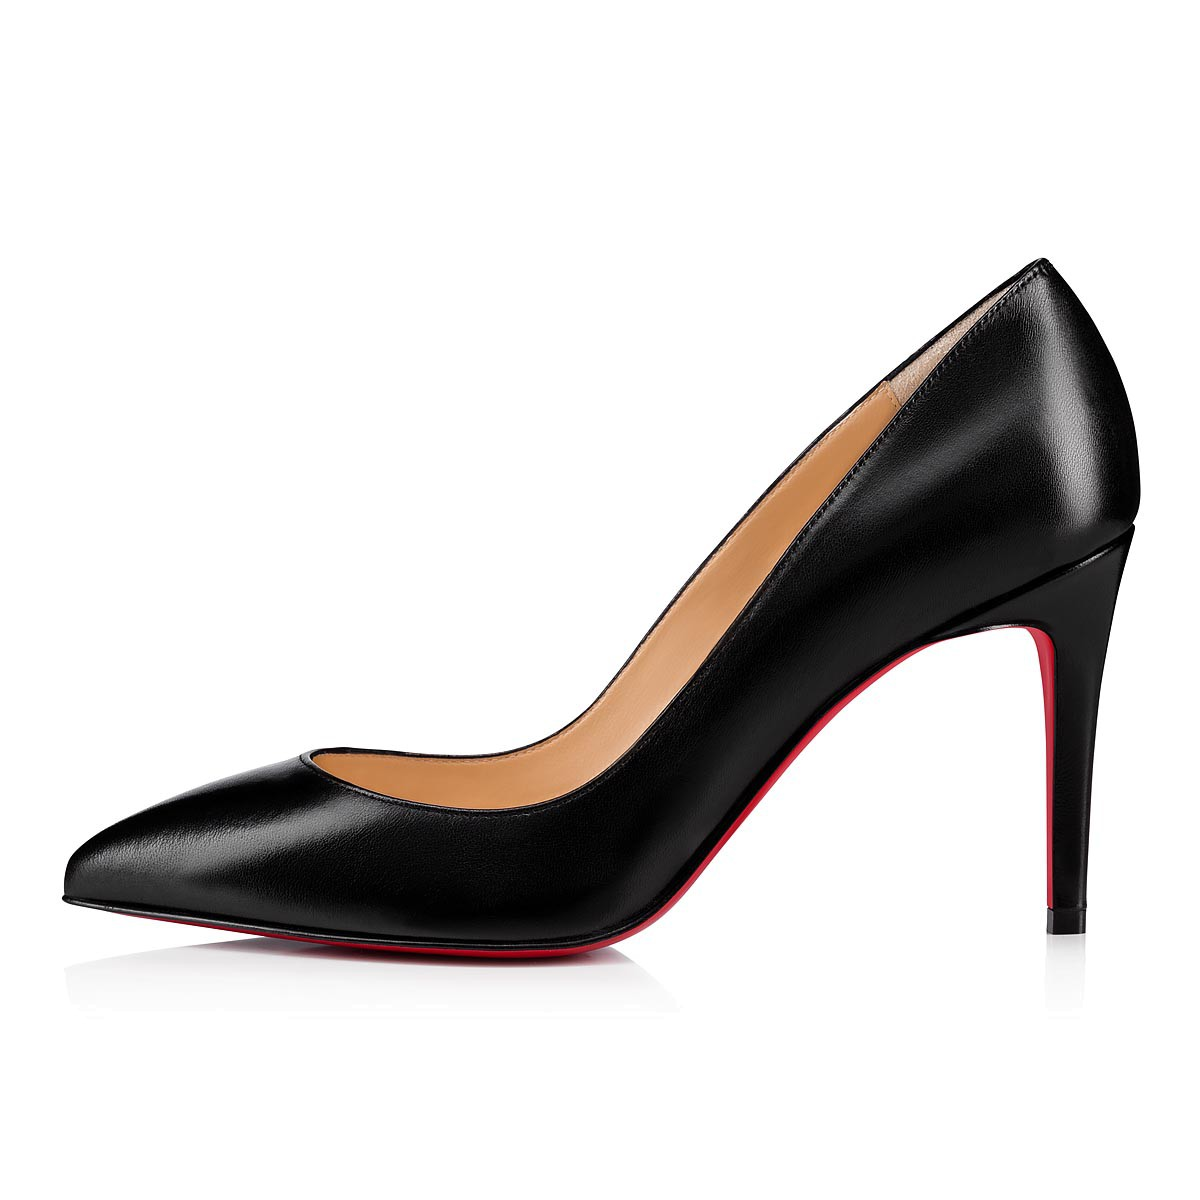 quality design 2f2d3 83acb Pigalle 85 Black Leather - Women Shoes - Christian Louboutin